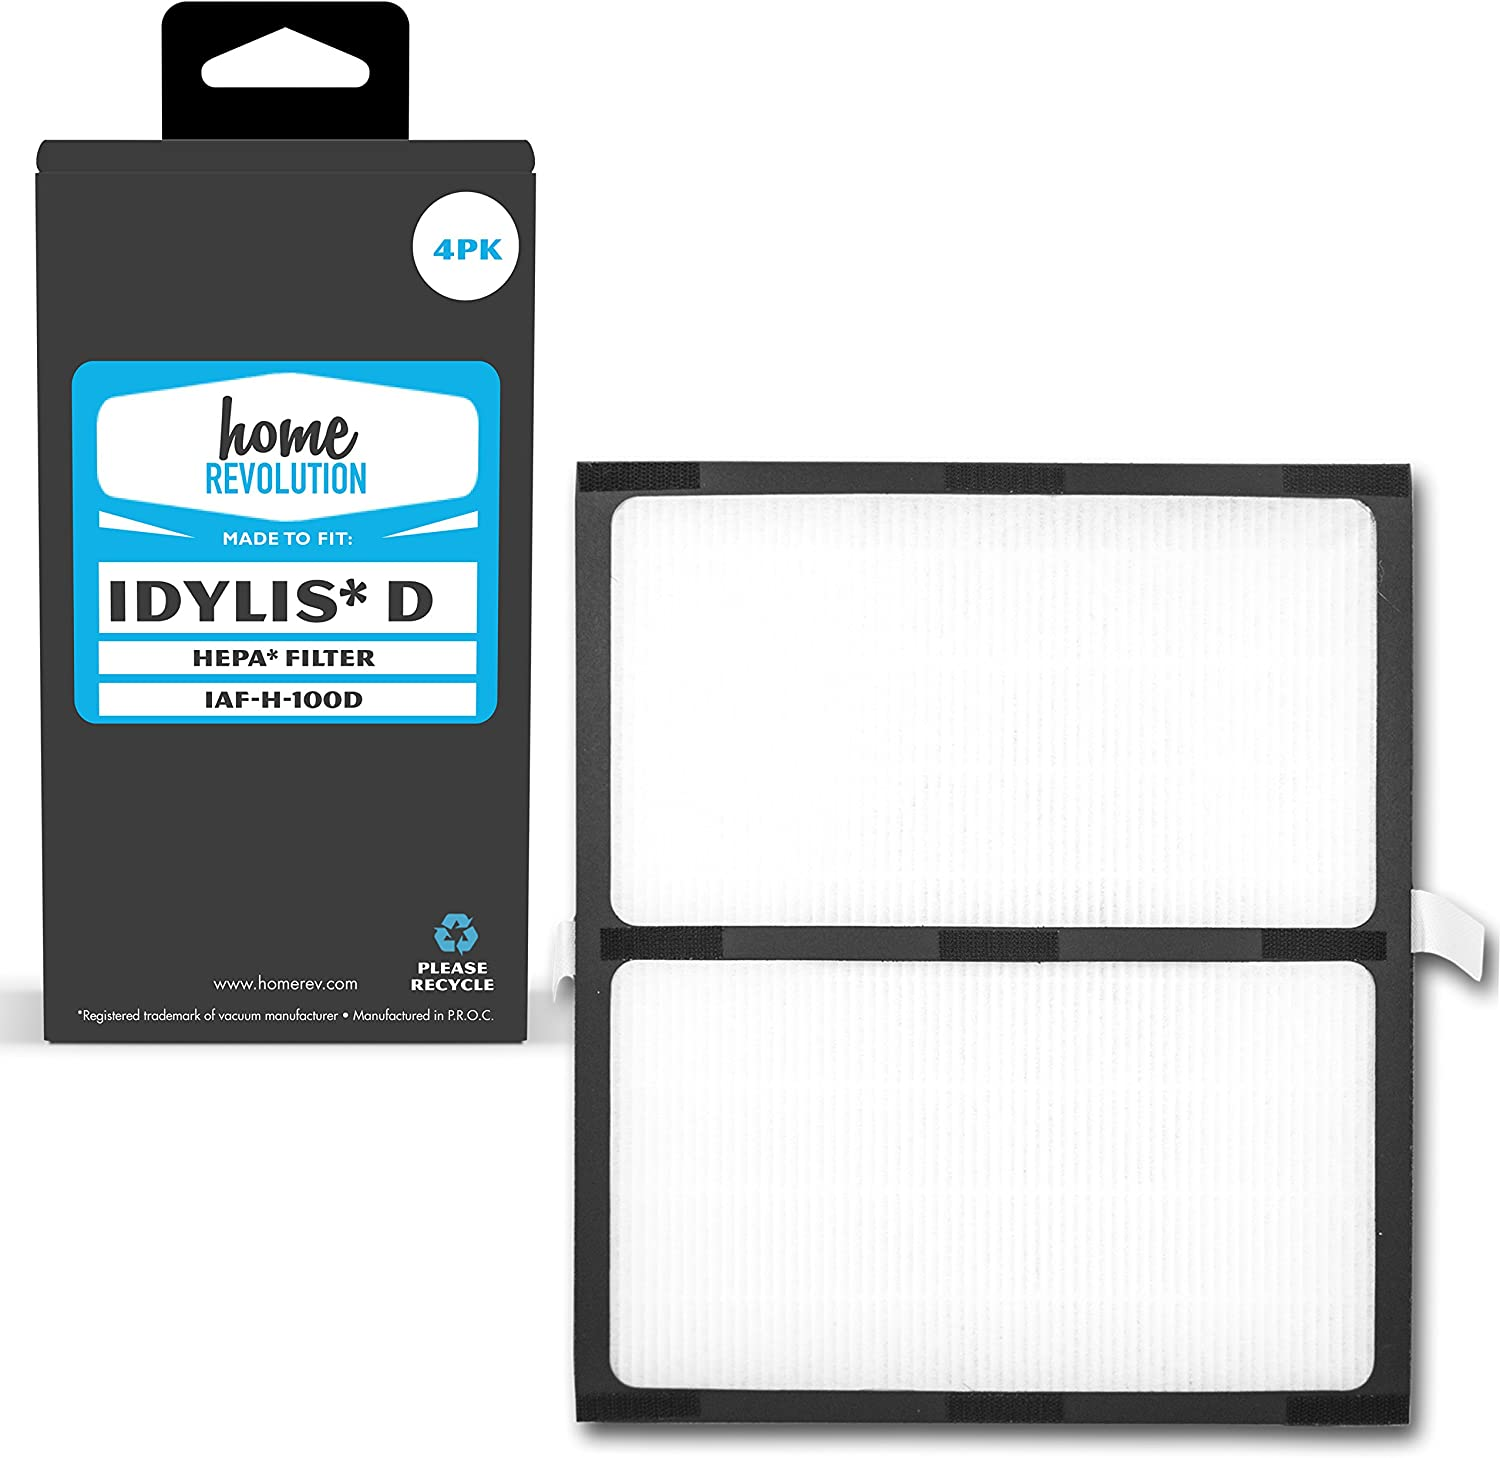 Home Revolution 4 Replacement HEPA Filters, Fits Idylis IAP-10-280 Air Purifiers and Type D Part IAF-H-100D